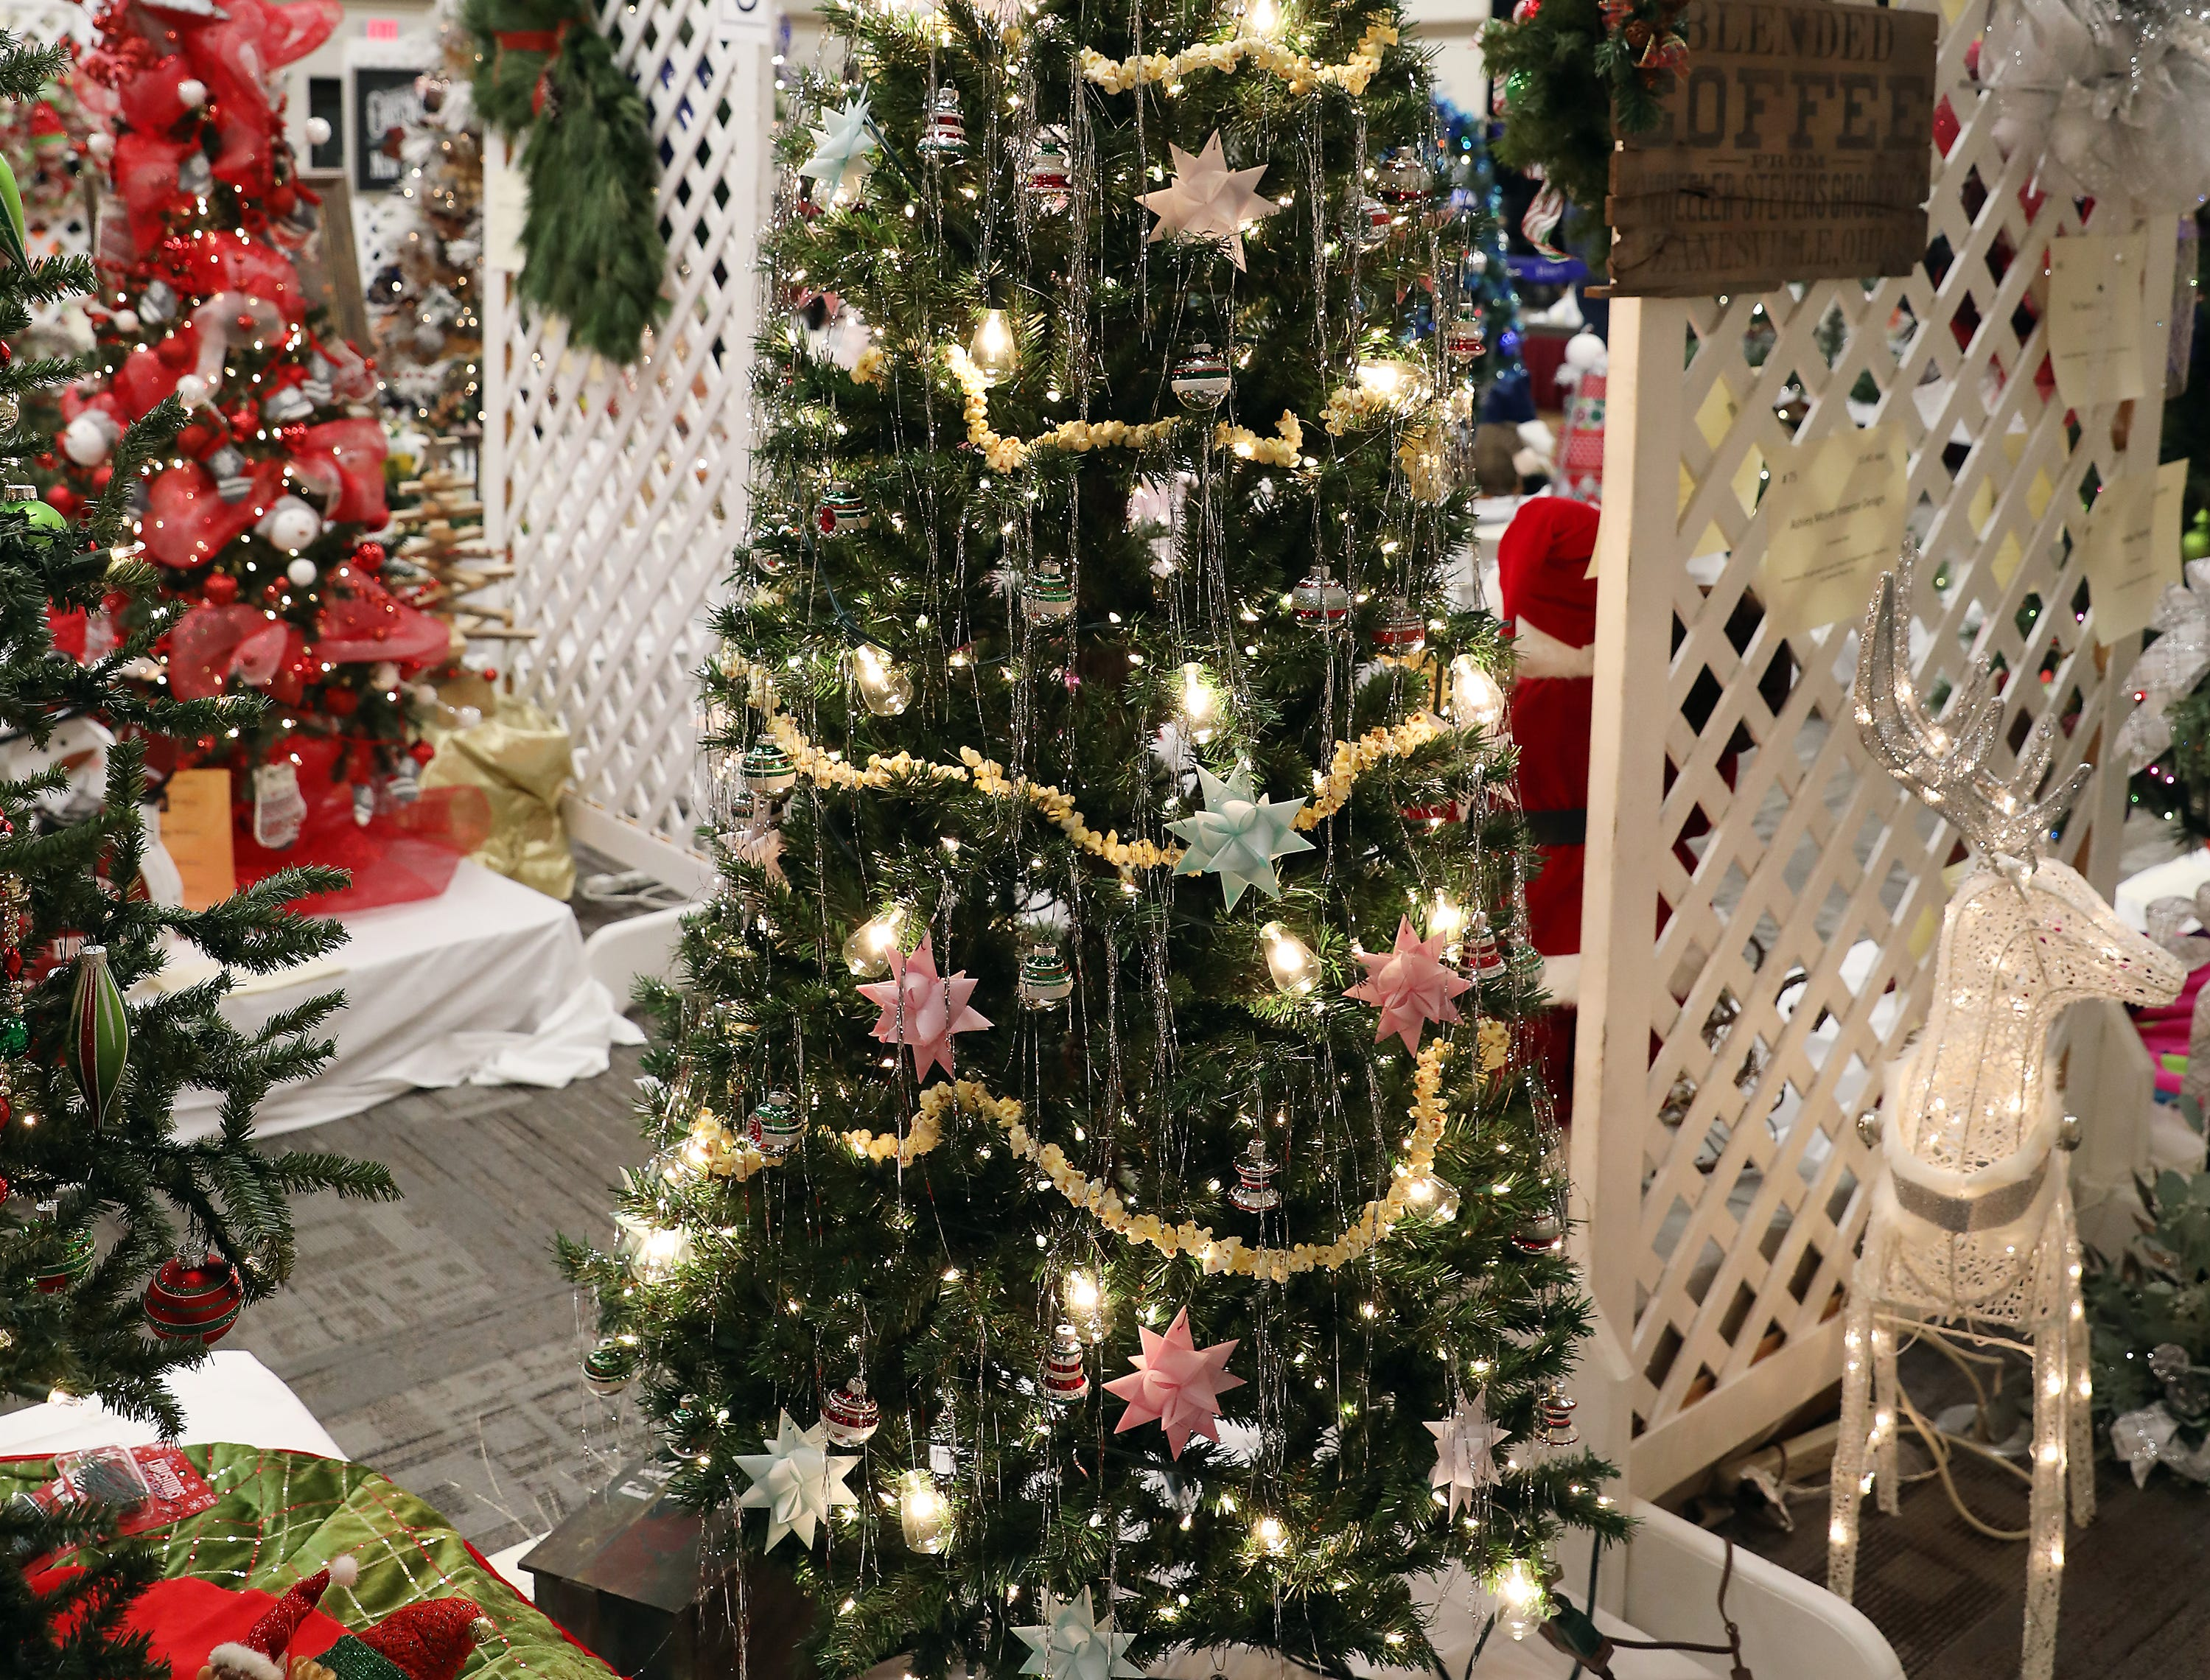 1964:45 PMAmerican Ear HearingLarge TreeTree of YesteryearLarge tree with clear lights, nostalgic,  40s-esque Christmas tree adorned with handmade paper ornaments and stringed popcorn.1 Starkey muse iq i2400 Receiver- In- Canal hearing aid and all test, dispensing and follow up fees